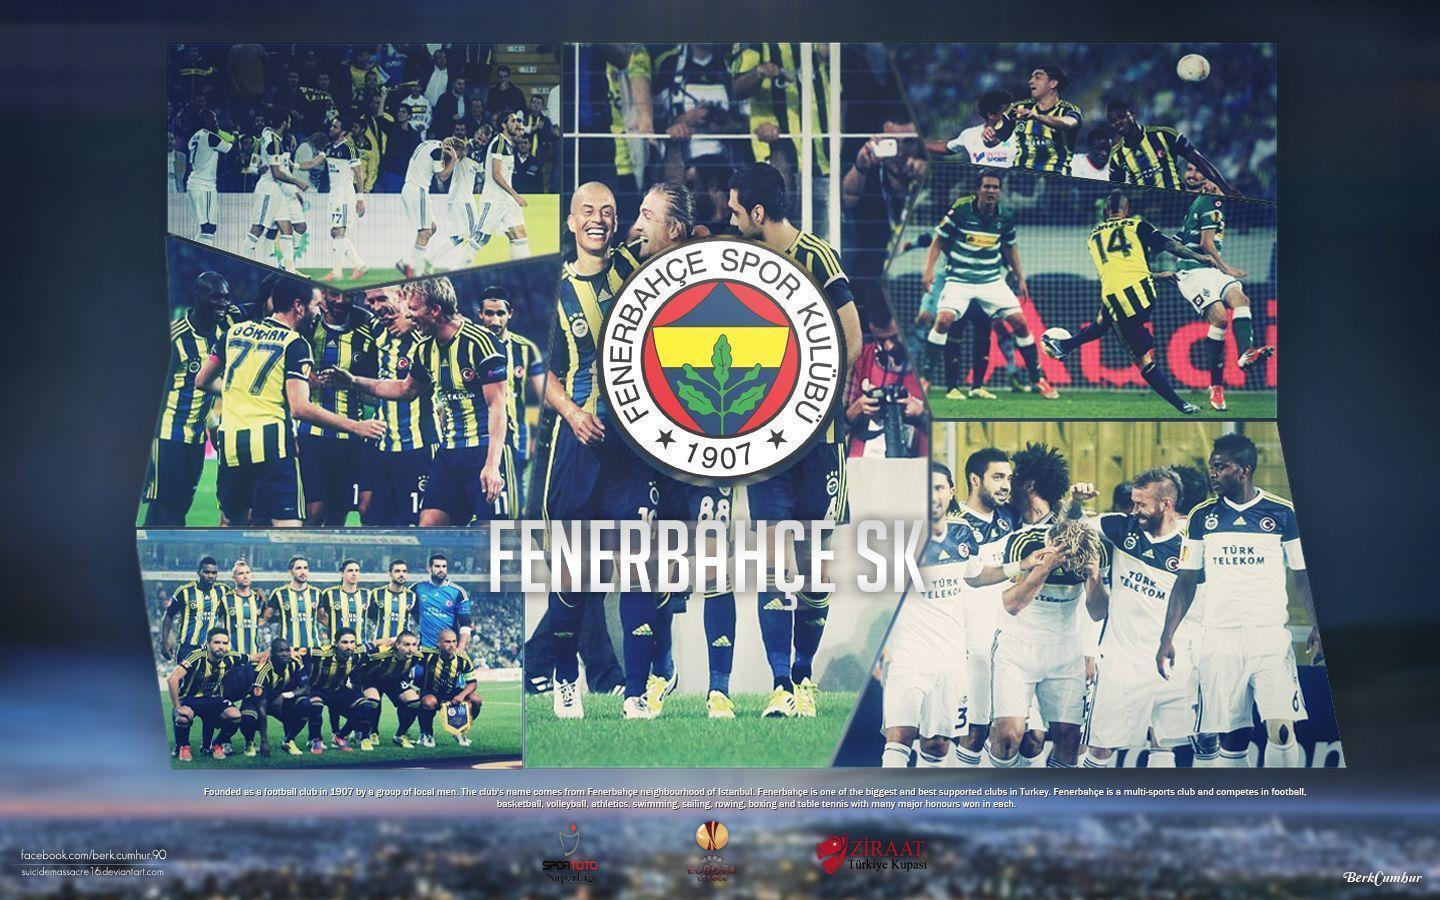 Fenerbahce SK by suicidemassacre16 on DeviantArt